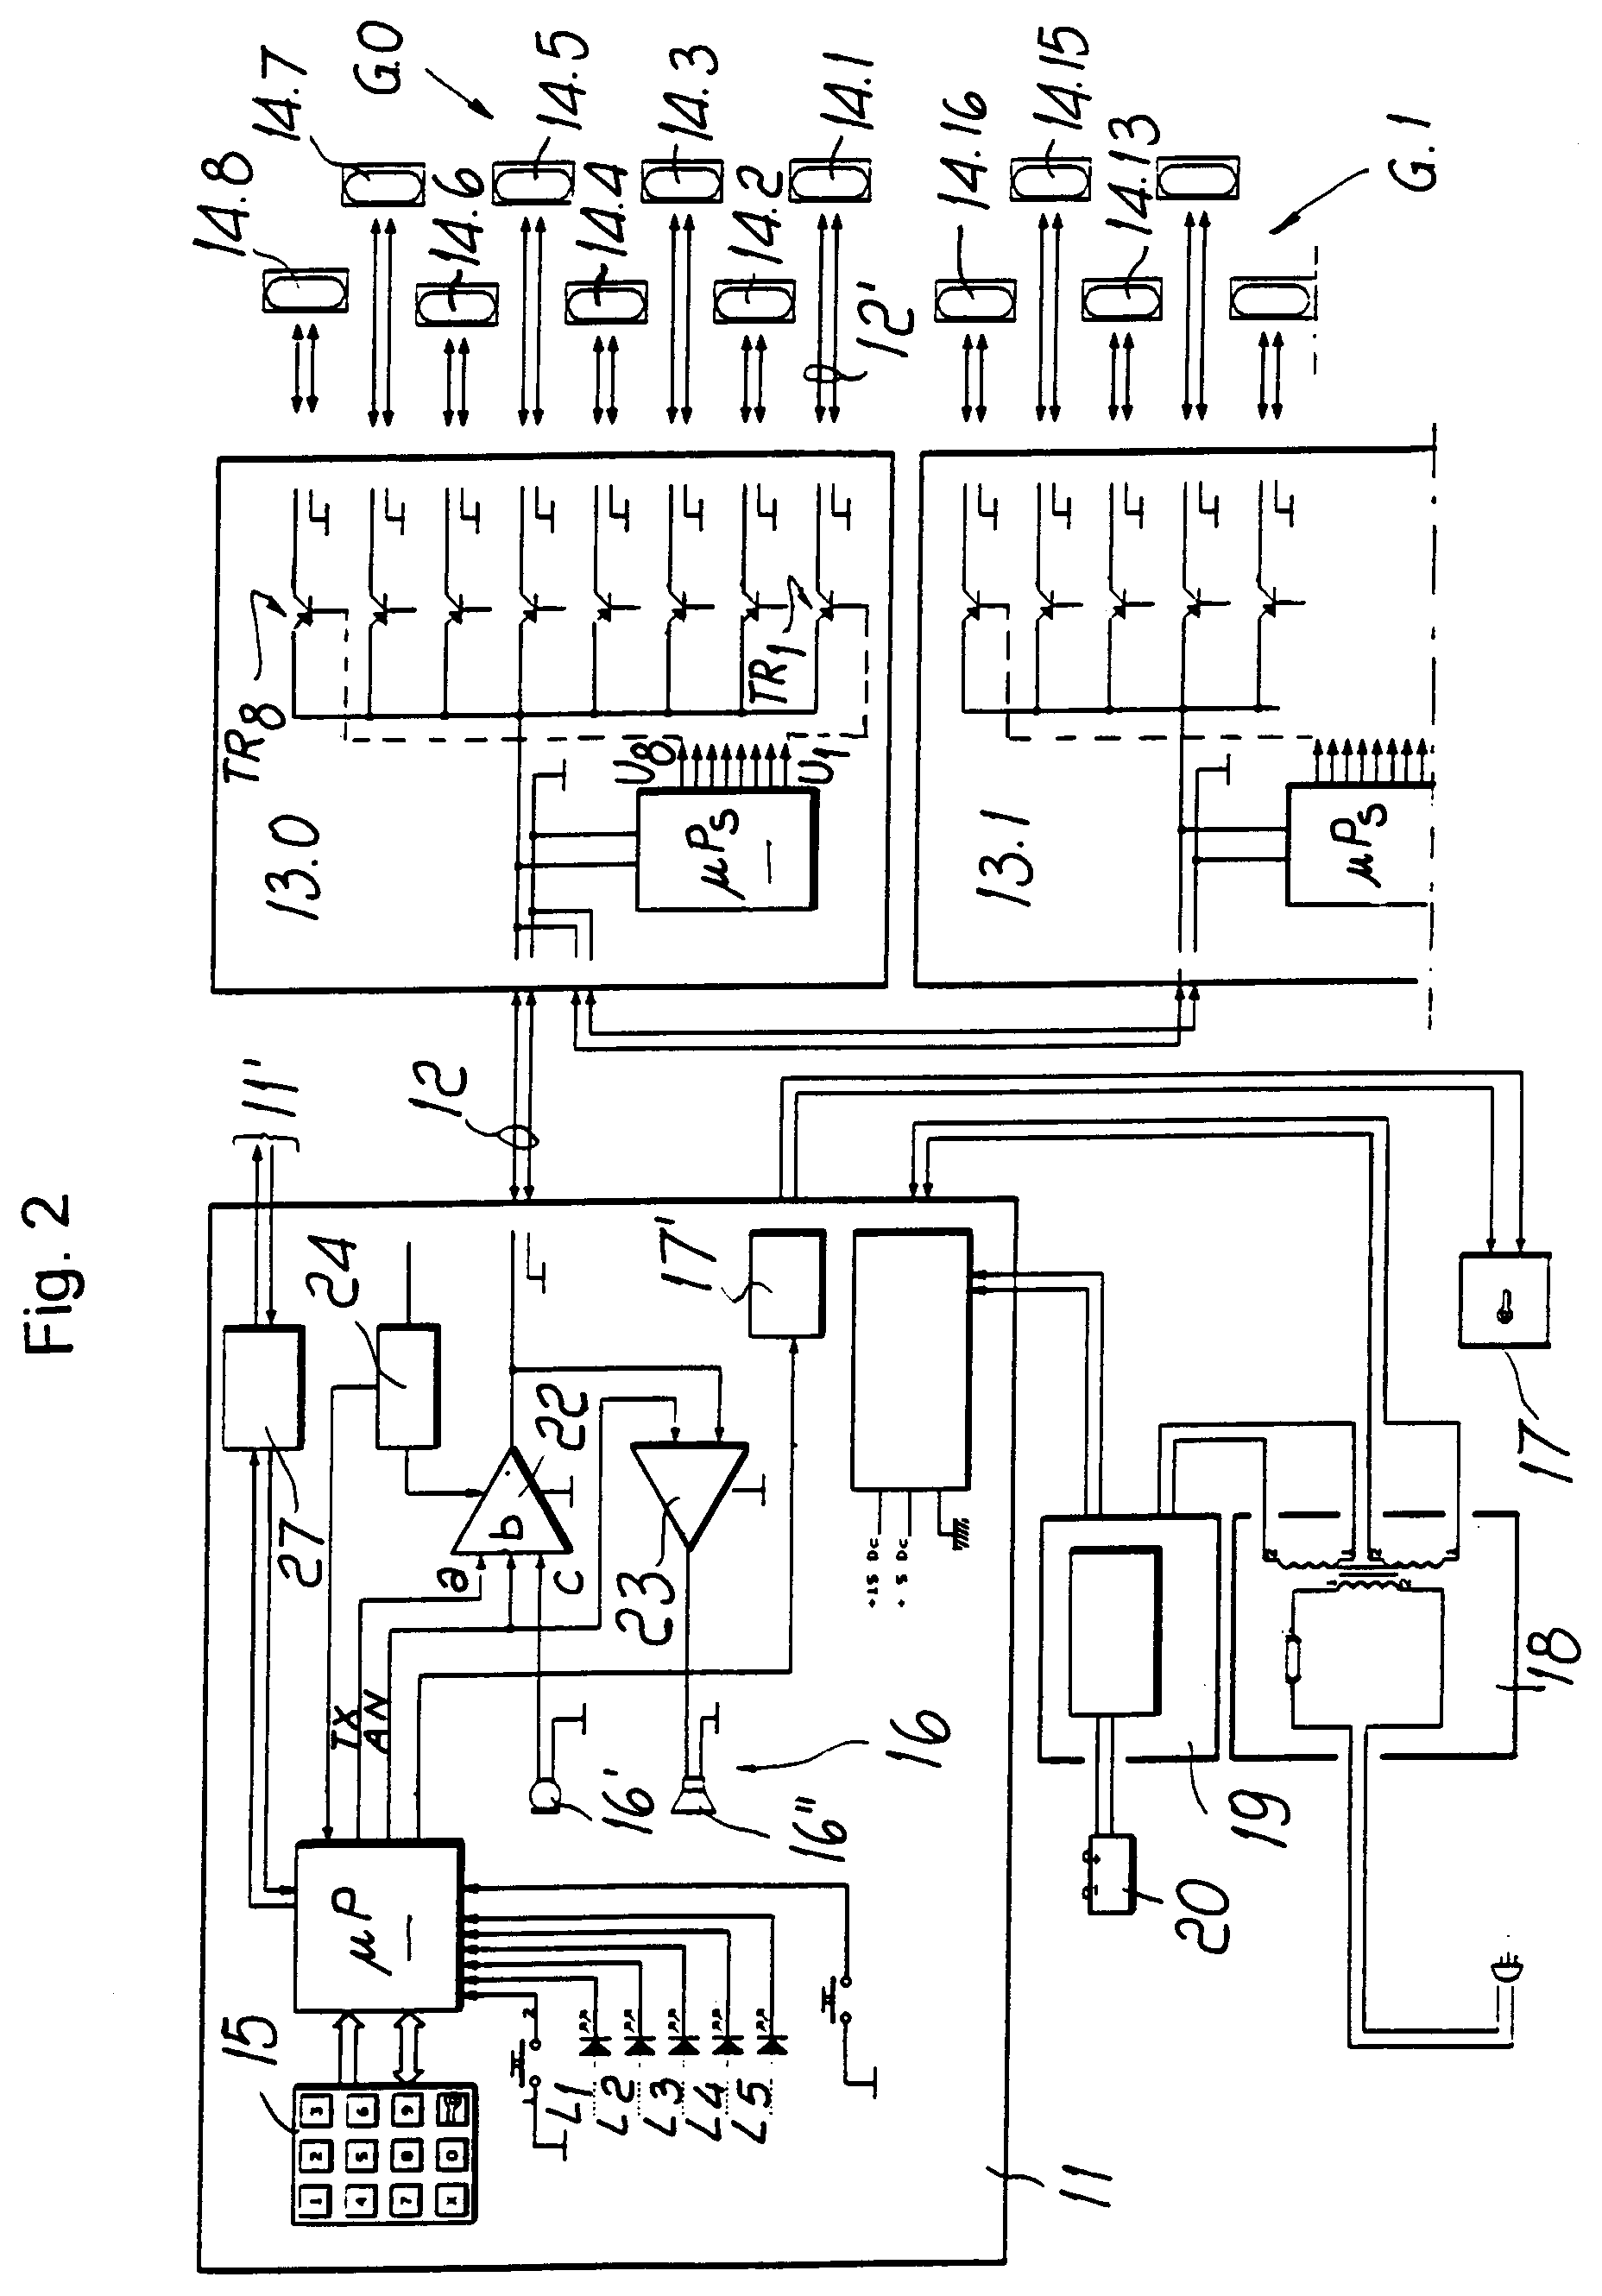 00160001 urmet wiring diagram urmet entry phone wiring diagram \u2022 wiring wiring diagram for intercom system at mifinder.co